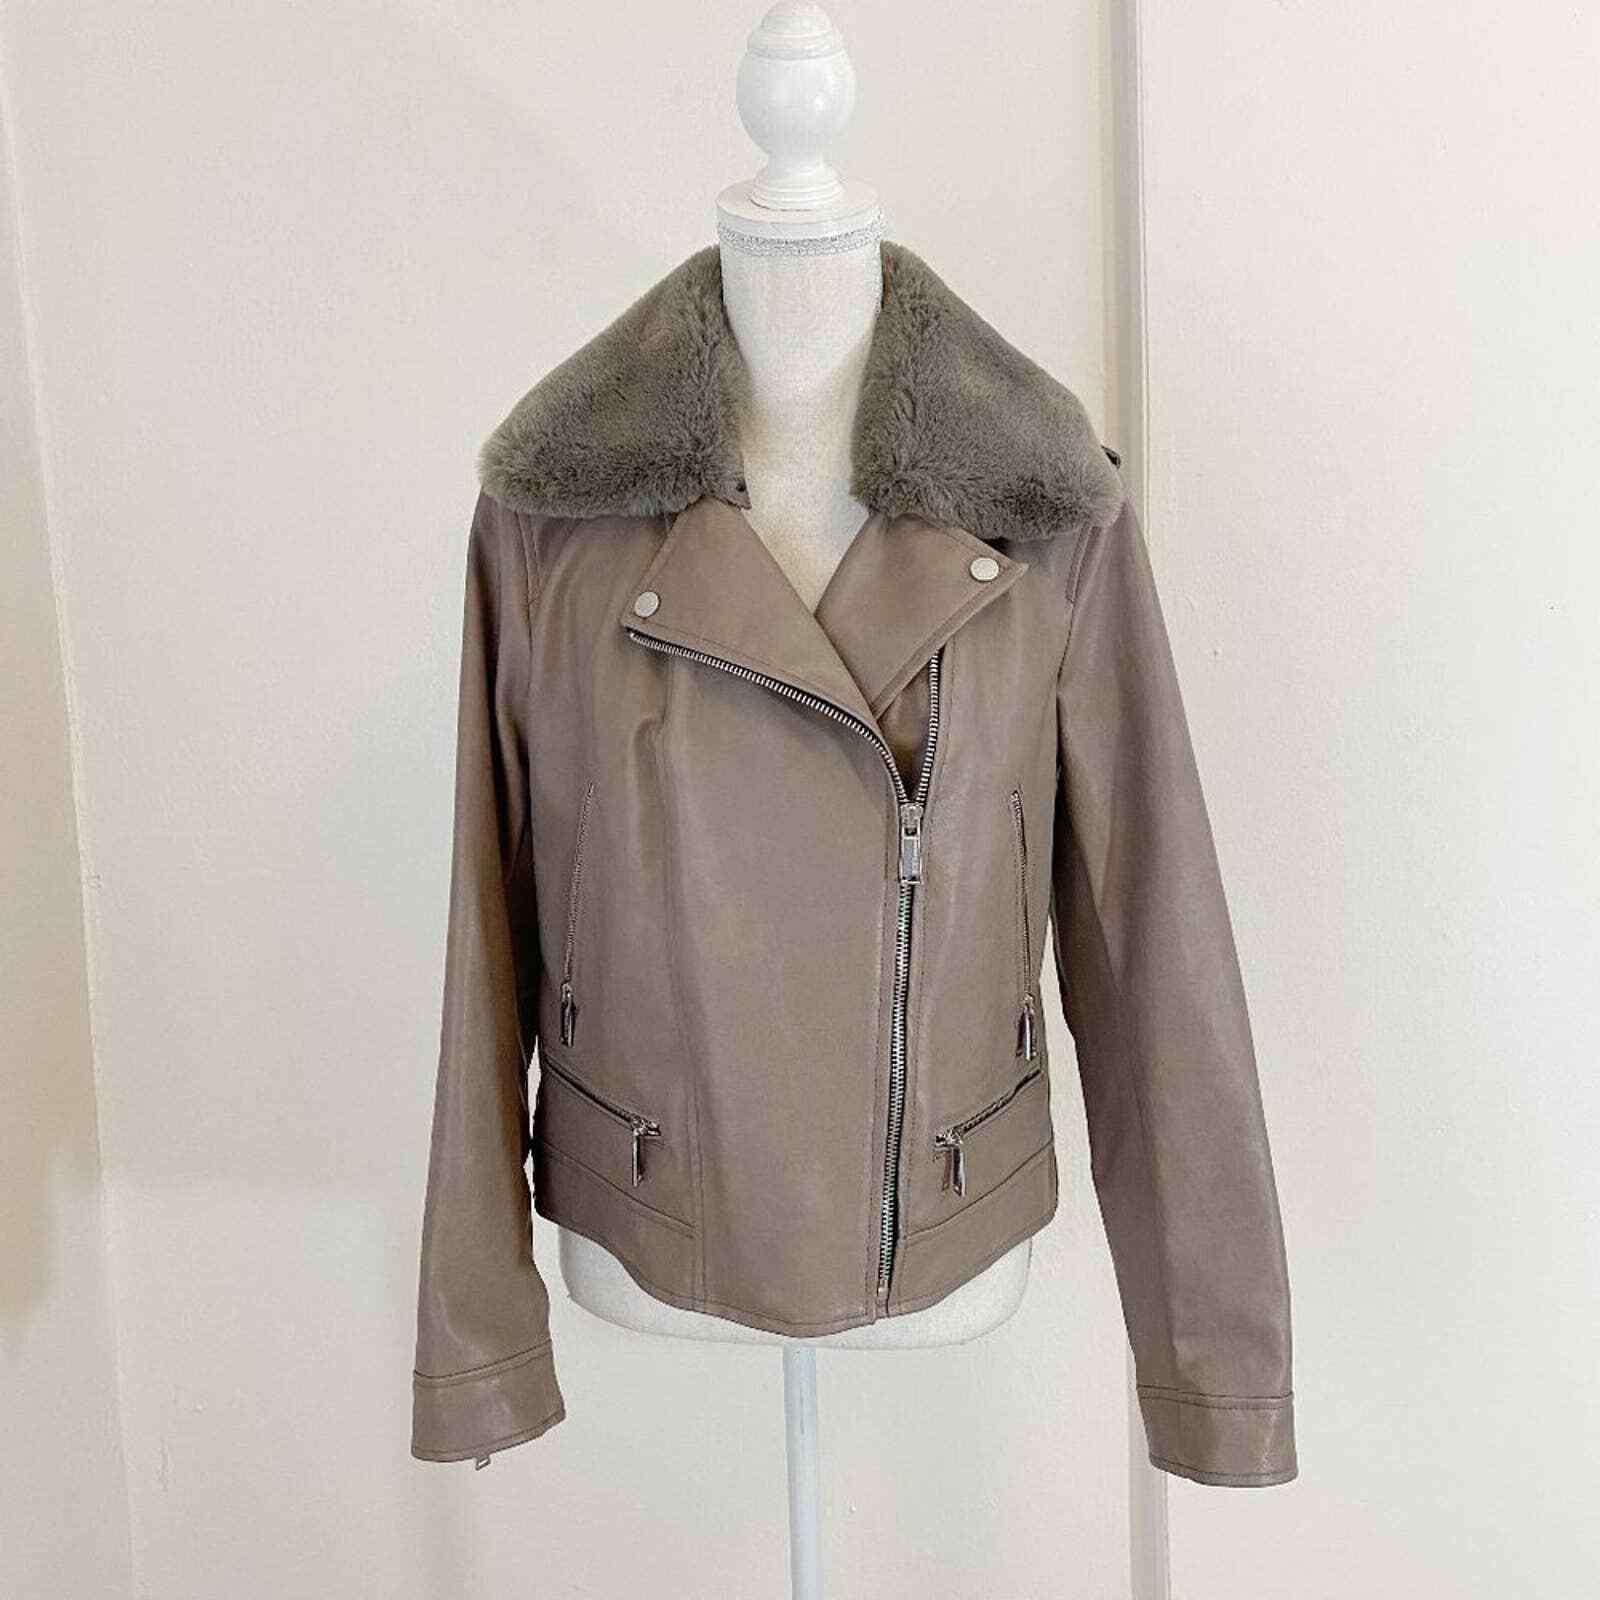 NWT BCBGeneration Women's Taupe Faux Leather Aviator Jacket Faux Fur Collar Sz M